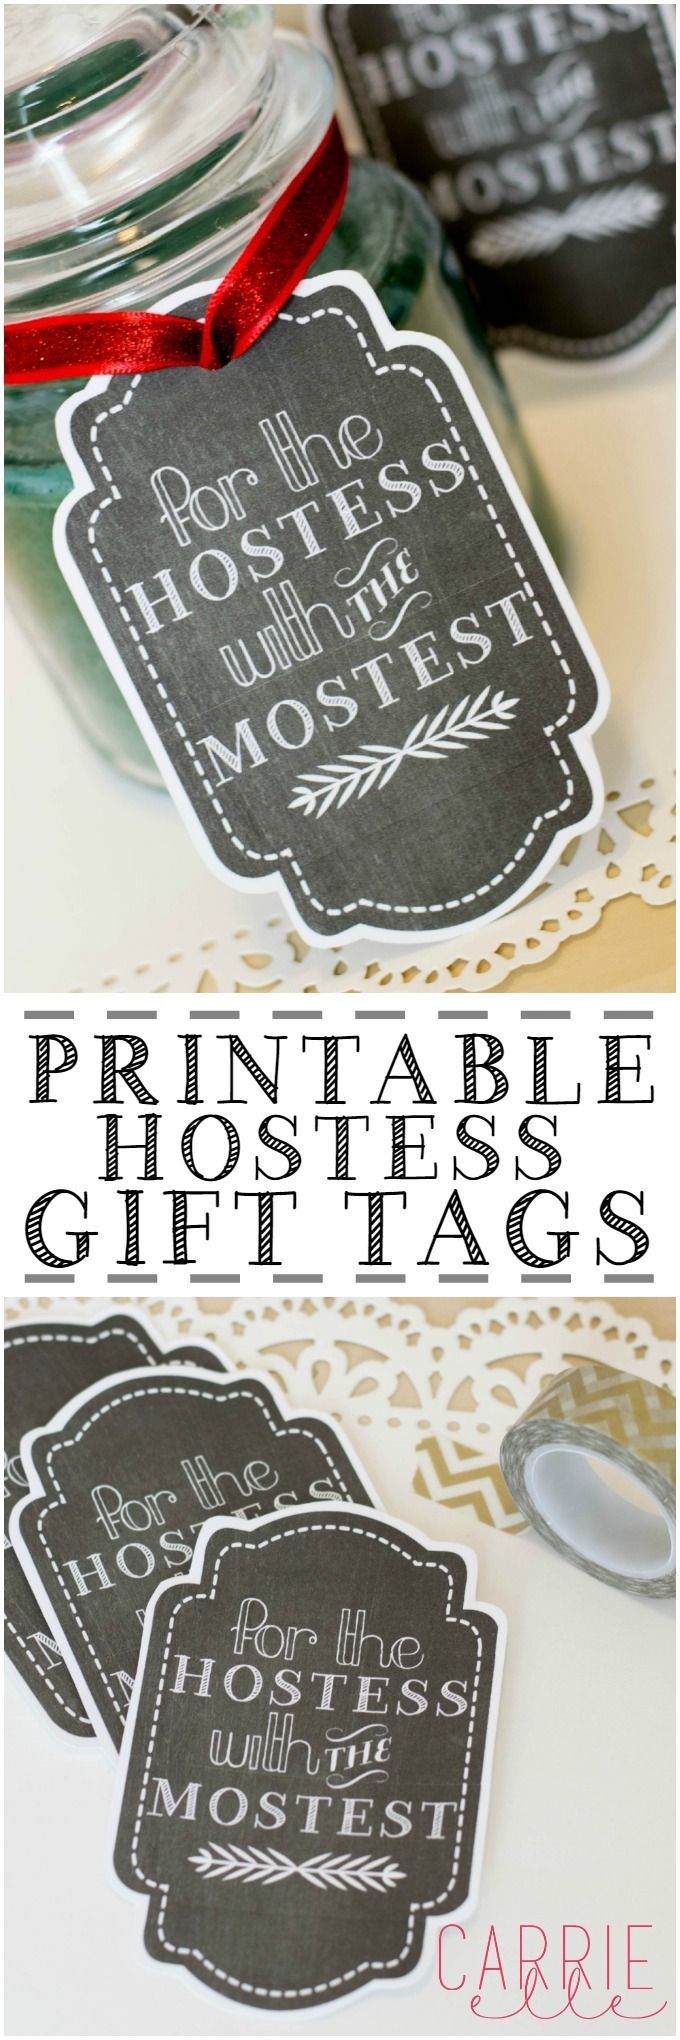 Unique Bridal Shower Hostess Gift Ideas : Unique bridal shower hostess gift ideas - Free Printable Gift Tags ...